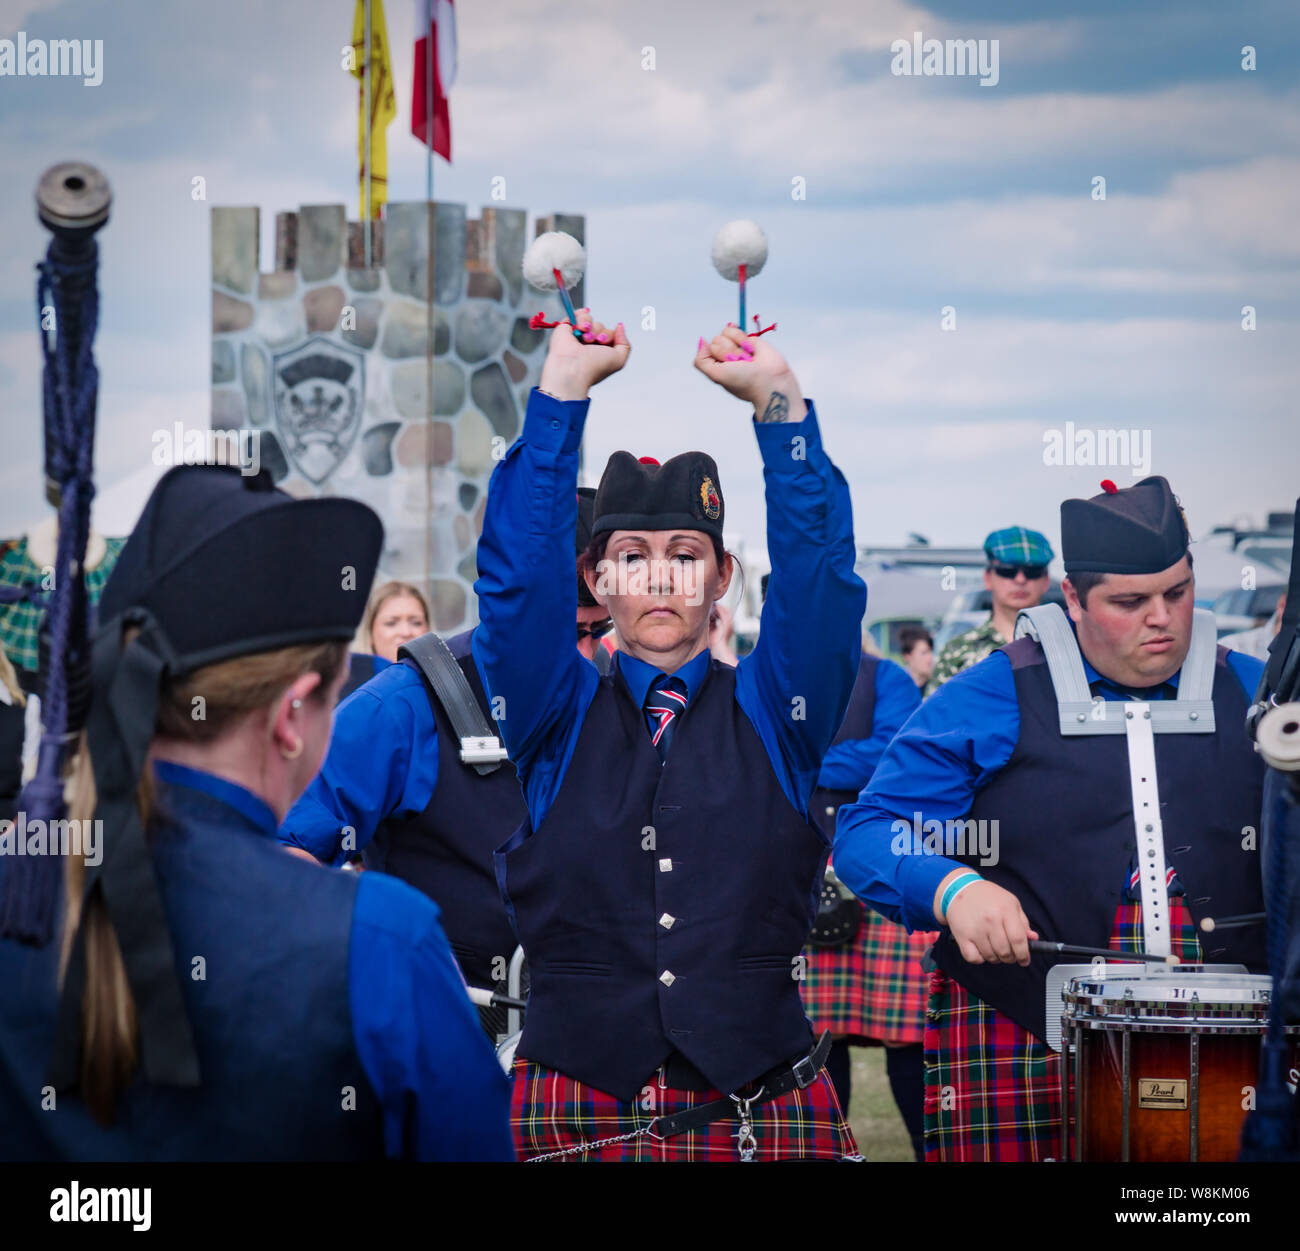 Fergus, Ontario, Canada - 08 11 2018: Drummer of the Hamilton Police Pipes and Drums band paricipating in the Pipe Band contest held by Pipers and Pip Stock Photo